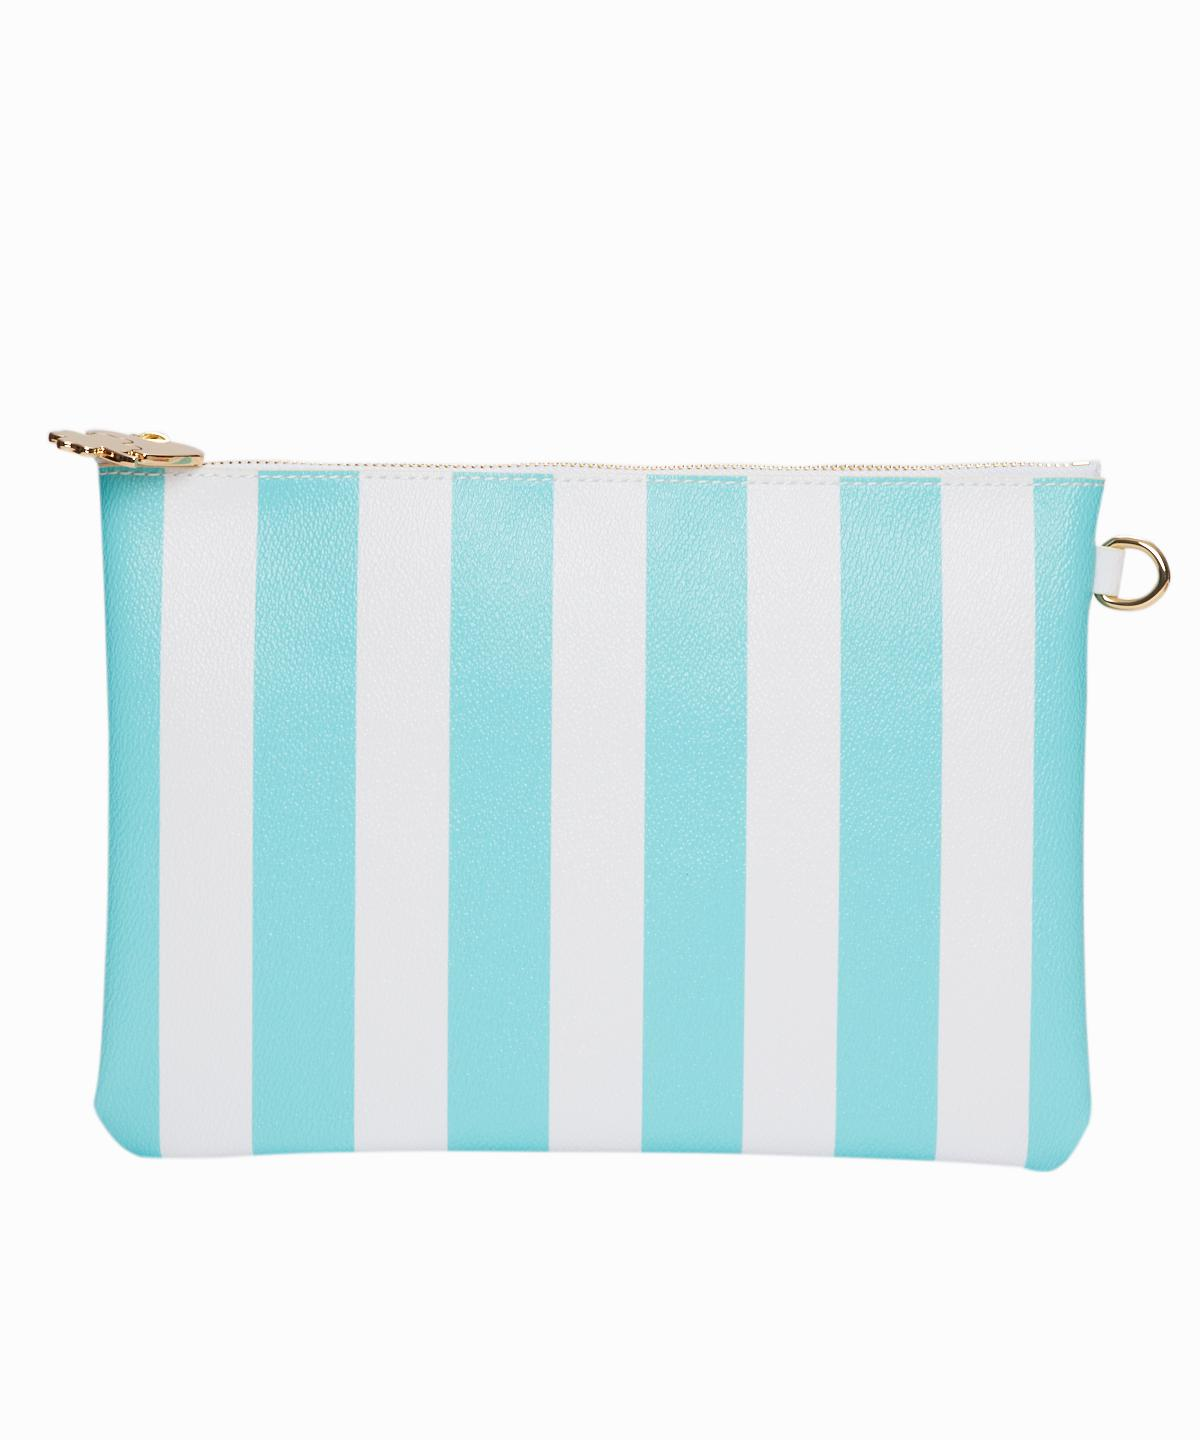 Turquoise Stripes Pouch